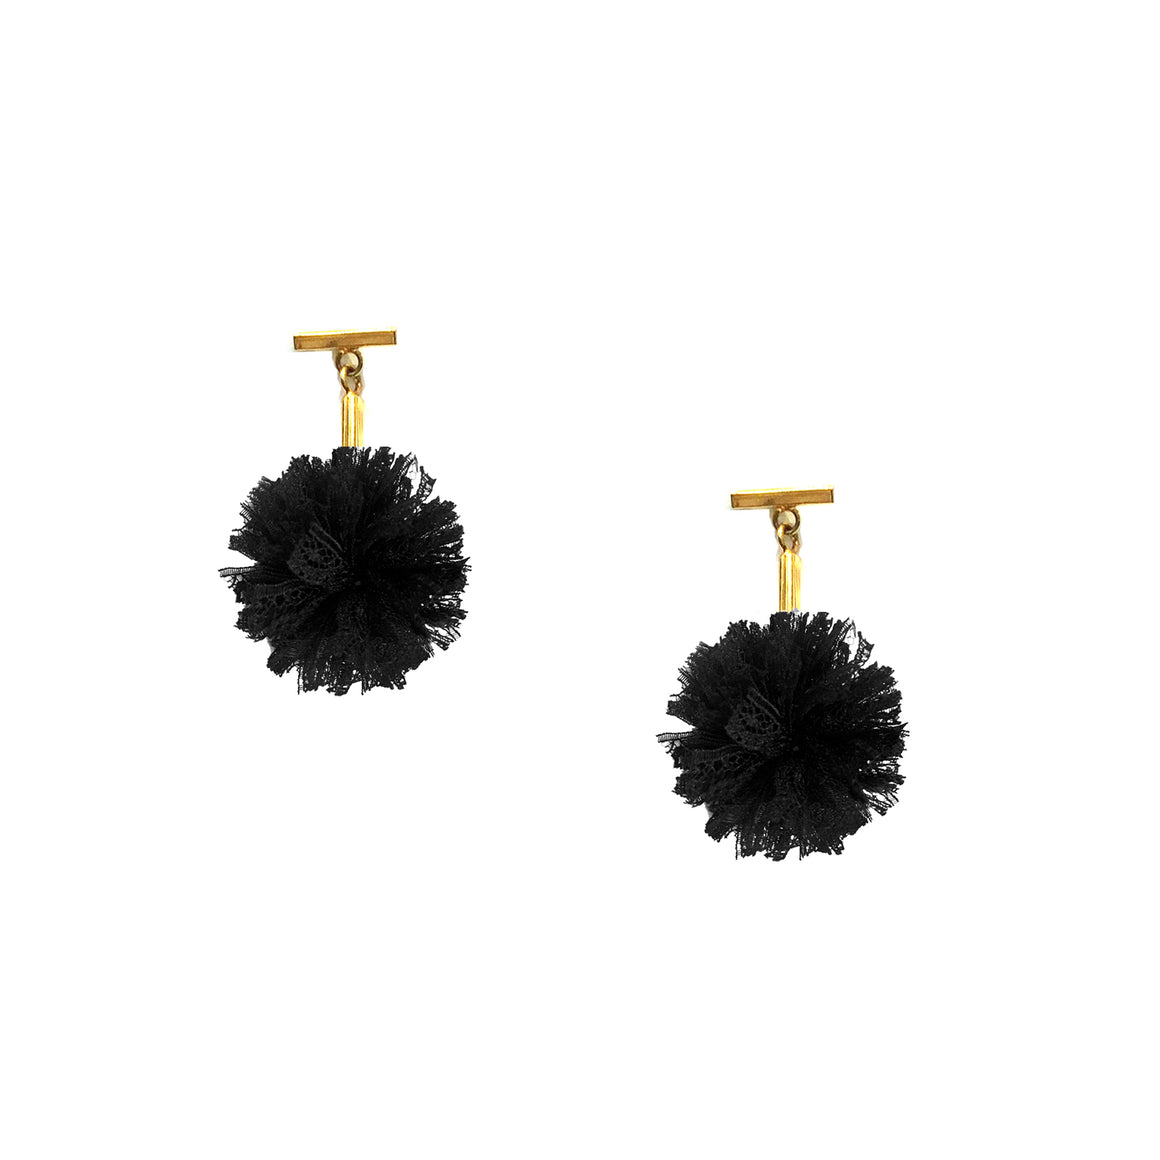 "Black 1"" Lace Pom Pom T Stud Earrings, Earrings, Tuleste, Tuleste"